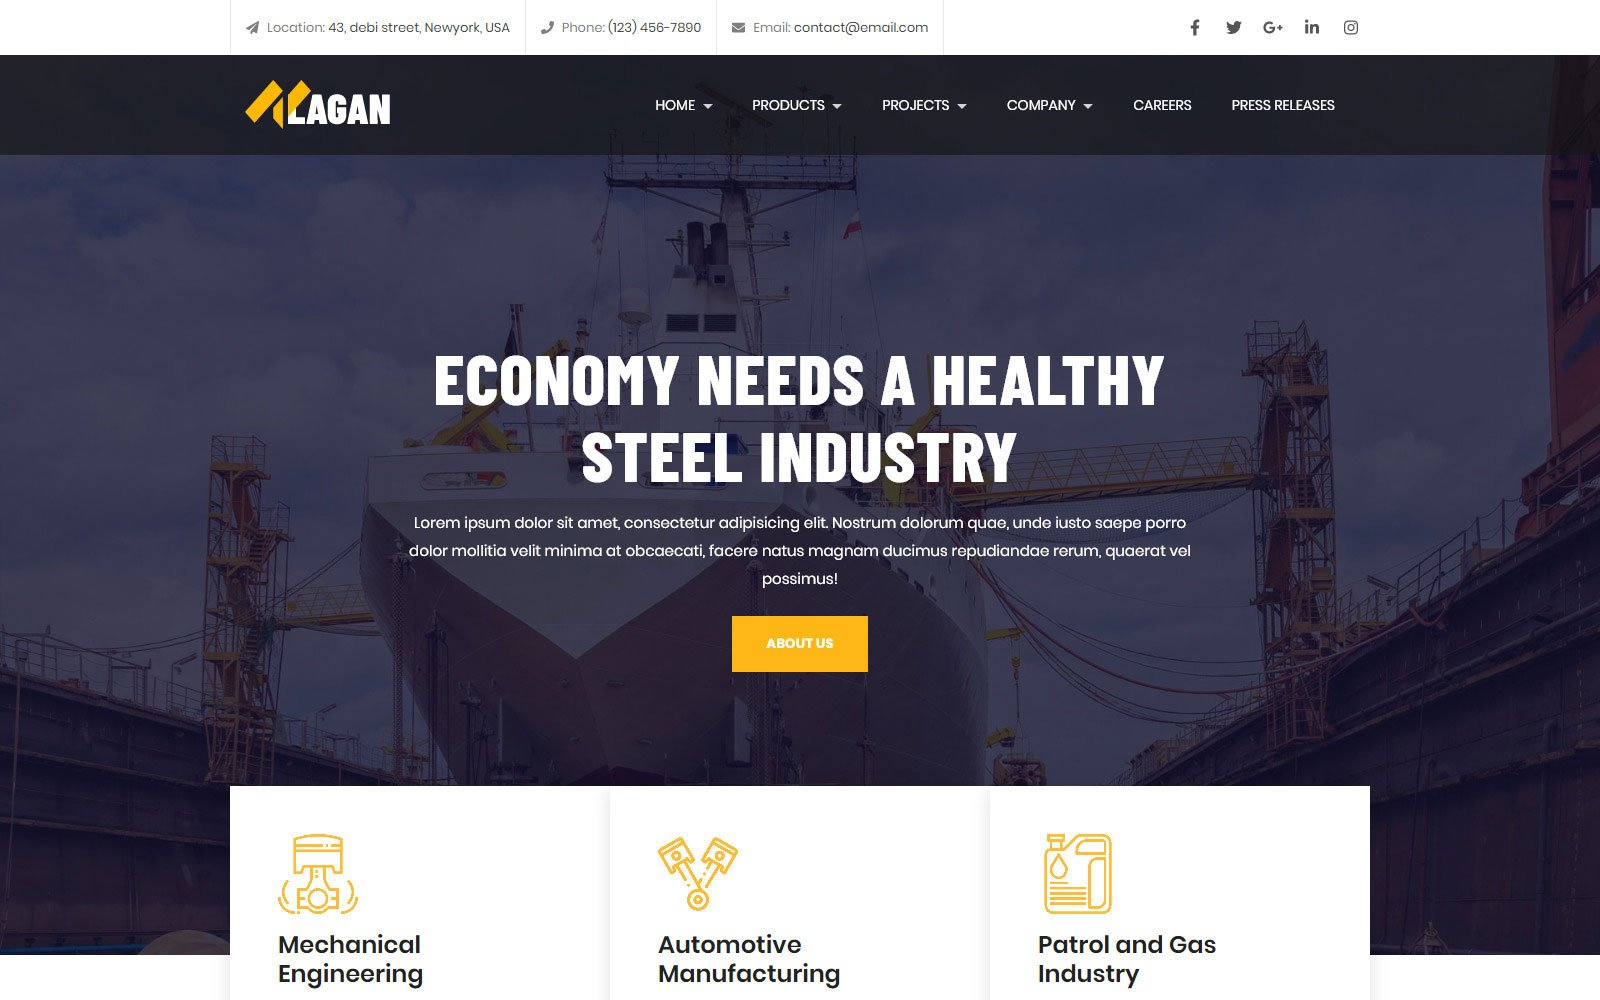 Lagan - Multipurpose Industrial & Factory Landing Page Template